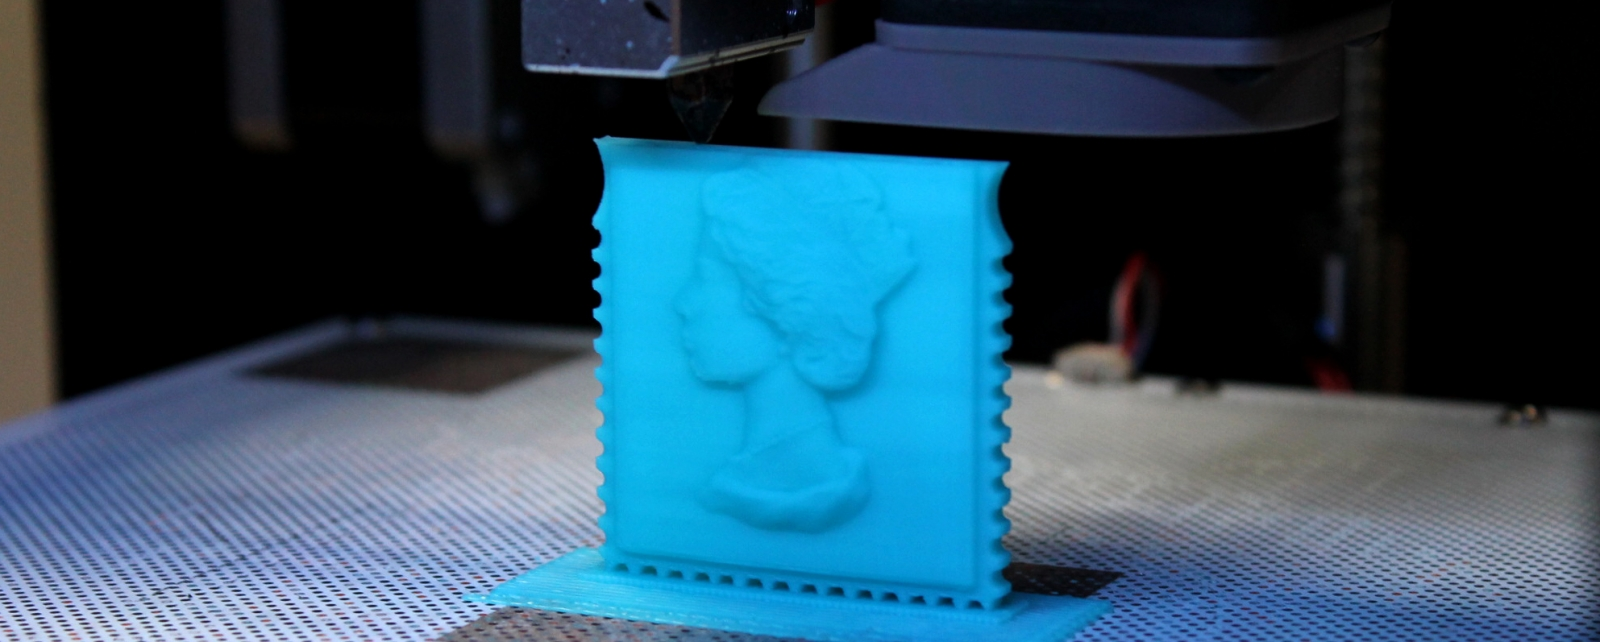 Royal Mail is trialling consumer retail 3D printing services at its London delivery office to gauge consumer demand